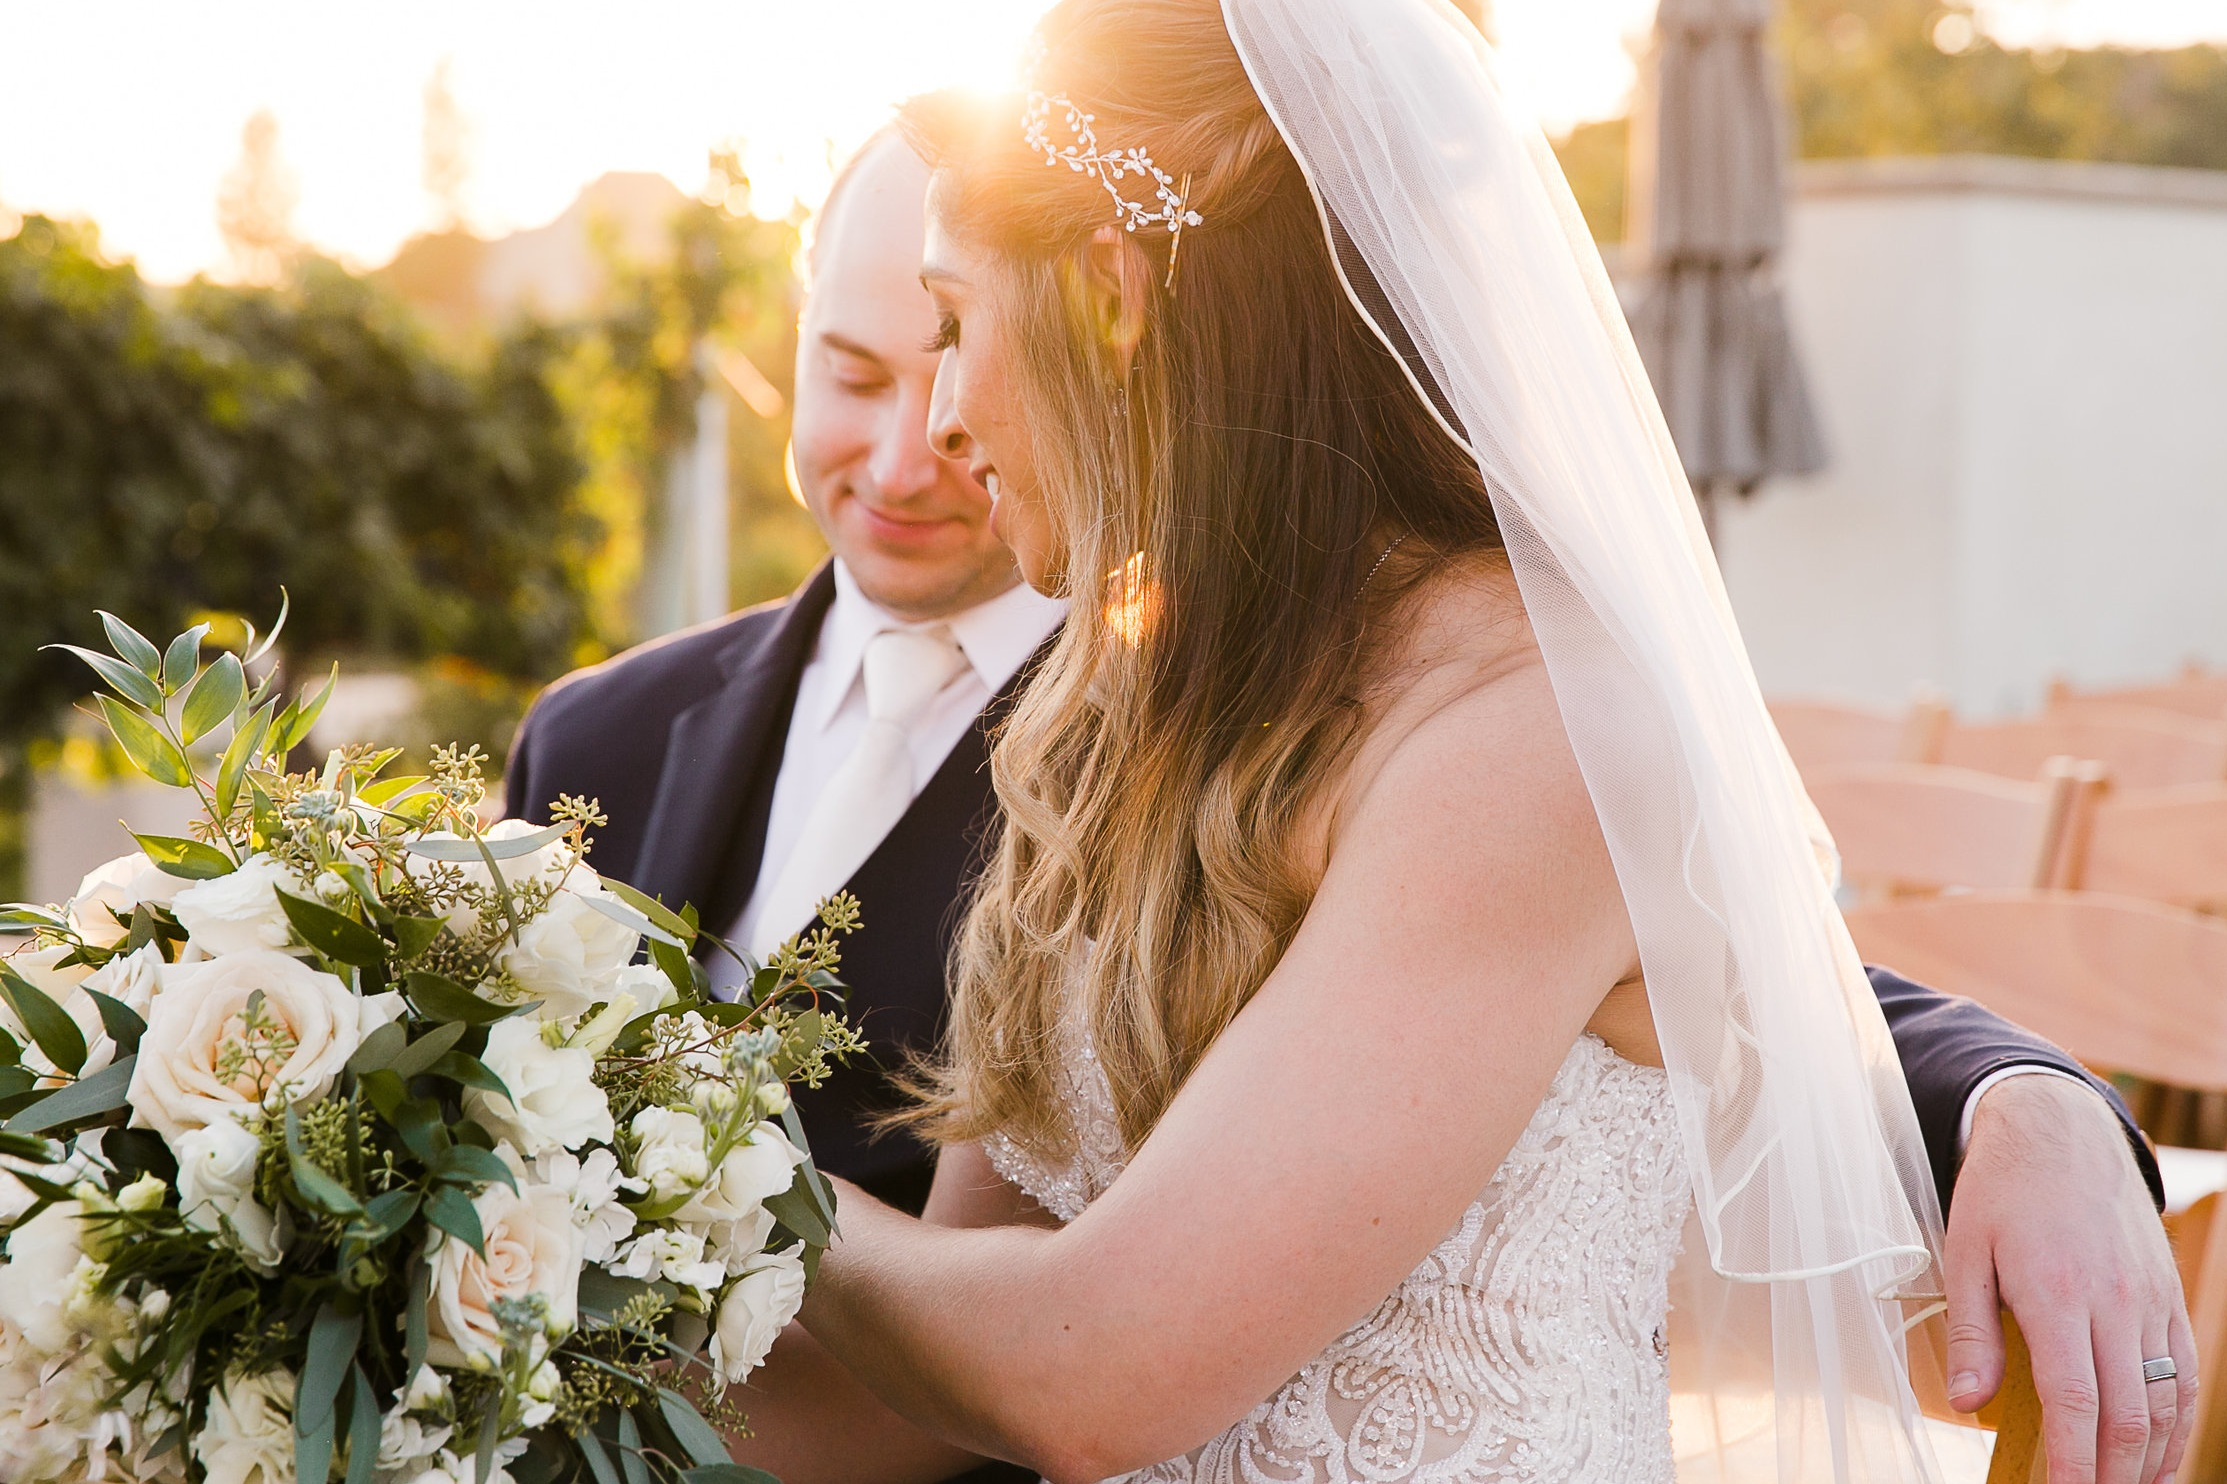 Brittnee + Andrew - Nick, I don't know what to say because everything is just so perfect there are no other words! I cannot thank you enough for capturing our special day so perfectly!!